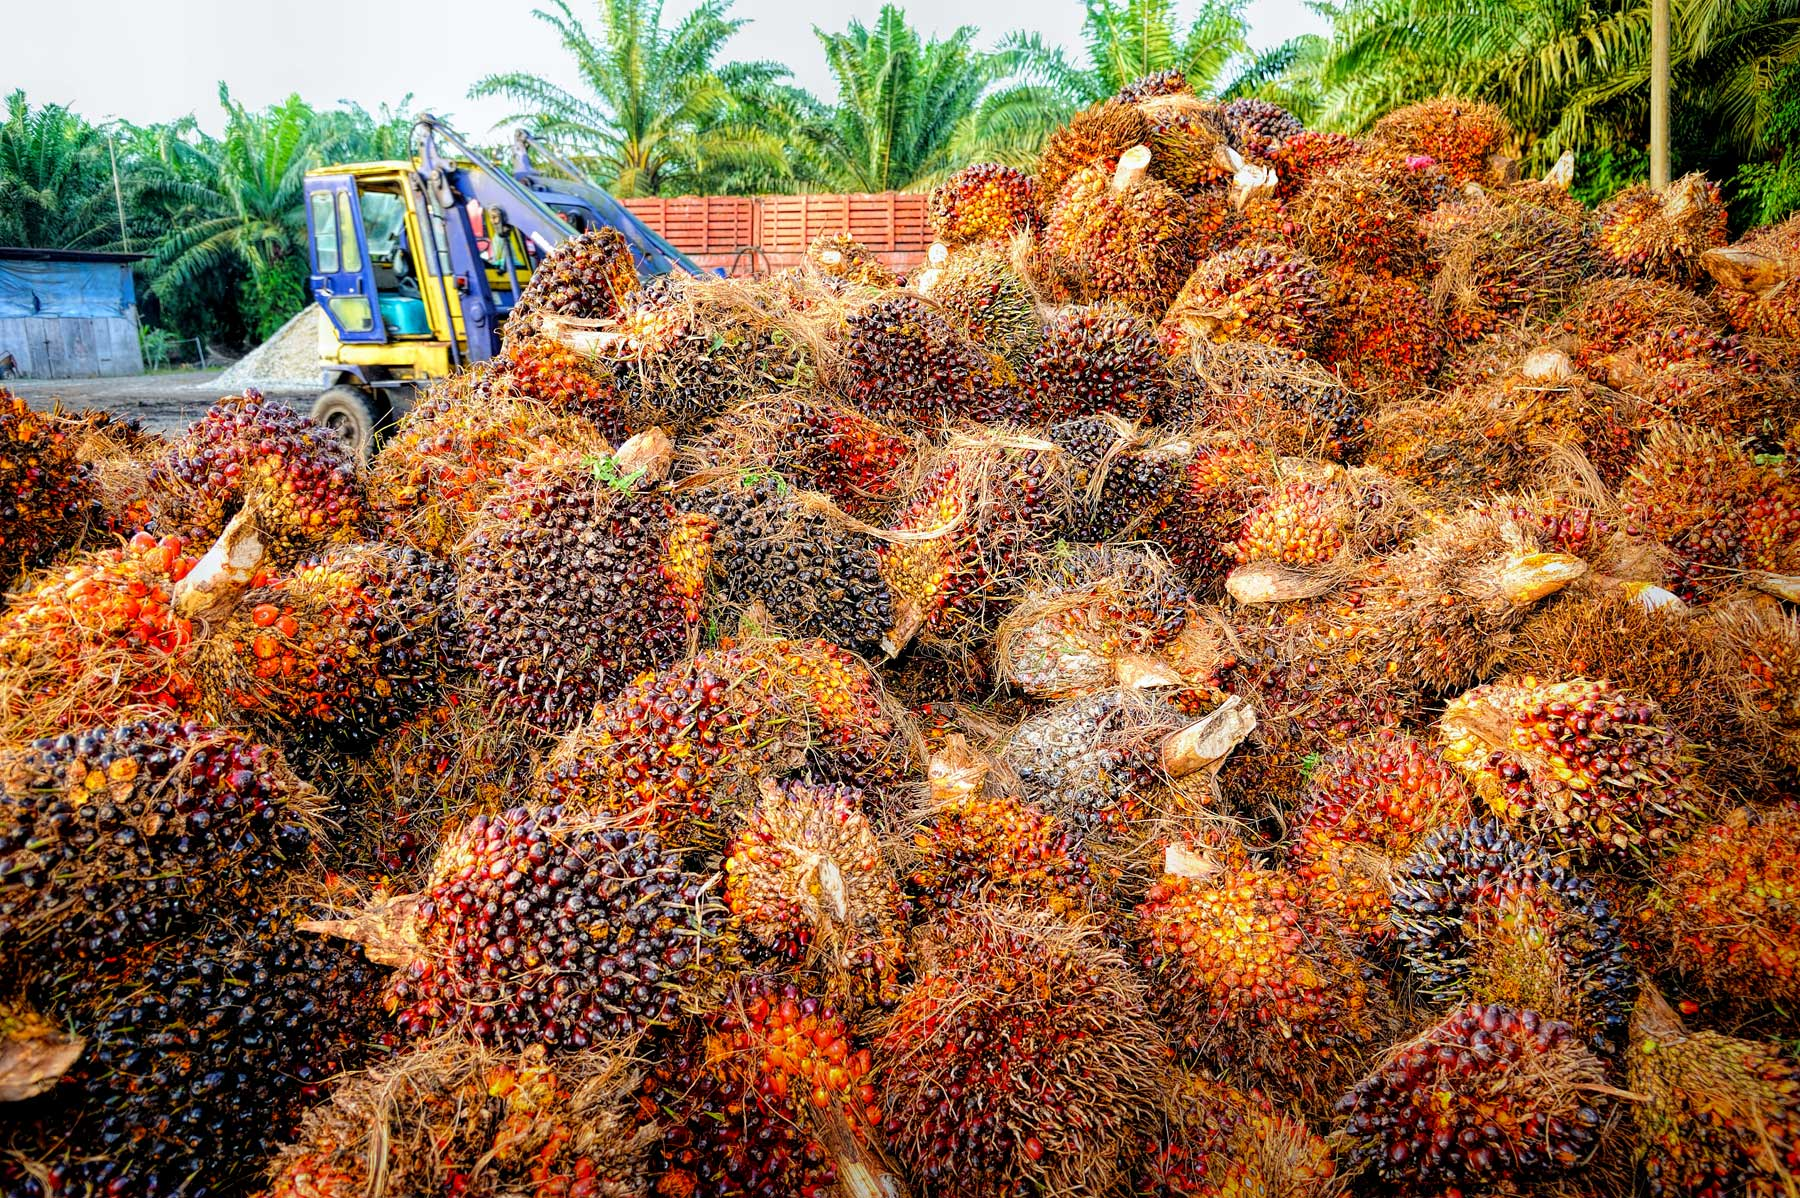 Harvested palm fruit bunches